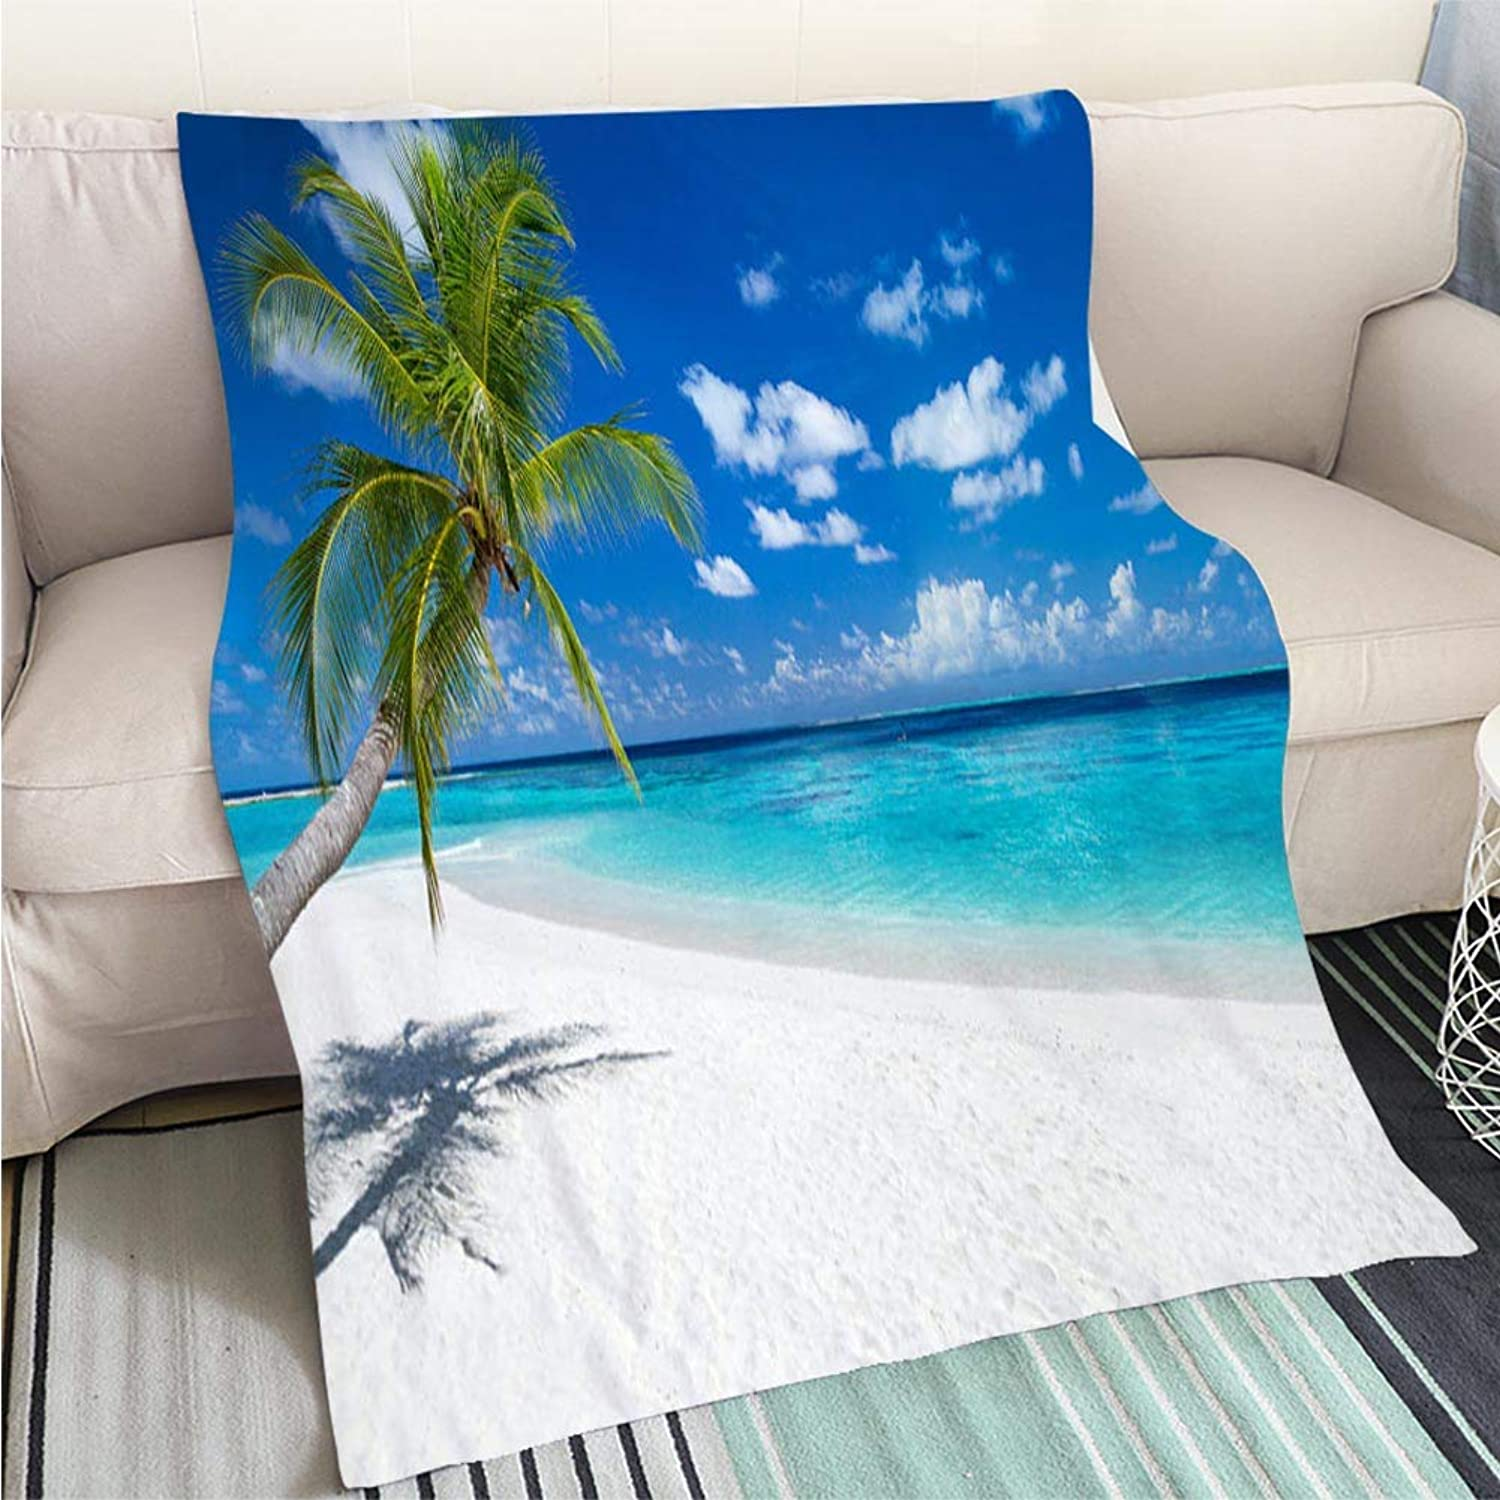 Comforter Multicolor Bed or Couch Coco Palm on Tropical Paradise Panorama Beach Hypoallergenic Blanket for Bed Couch Chair